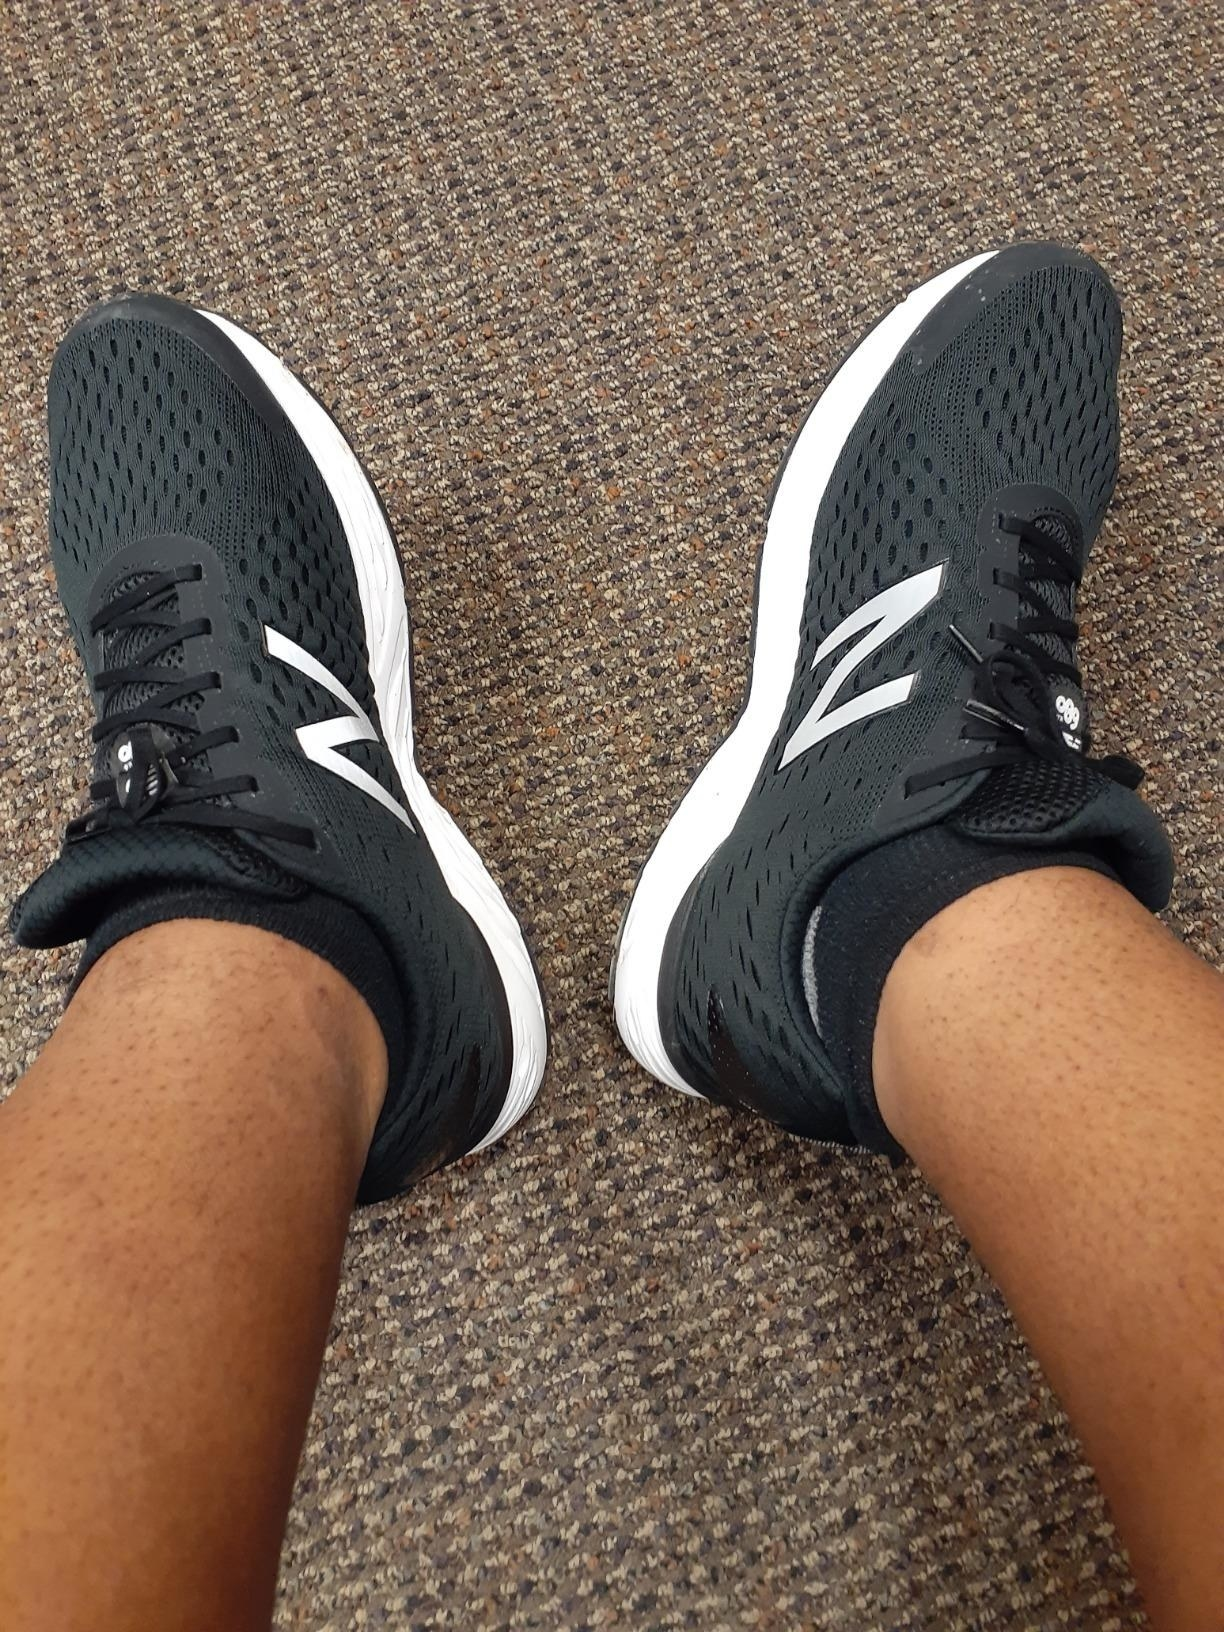 """A reviewer wearing the black shoes with a white """"N"""" and breathable mesh fabric covering the shoes"""